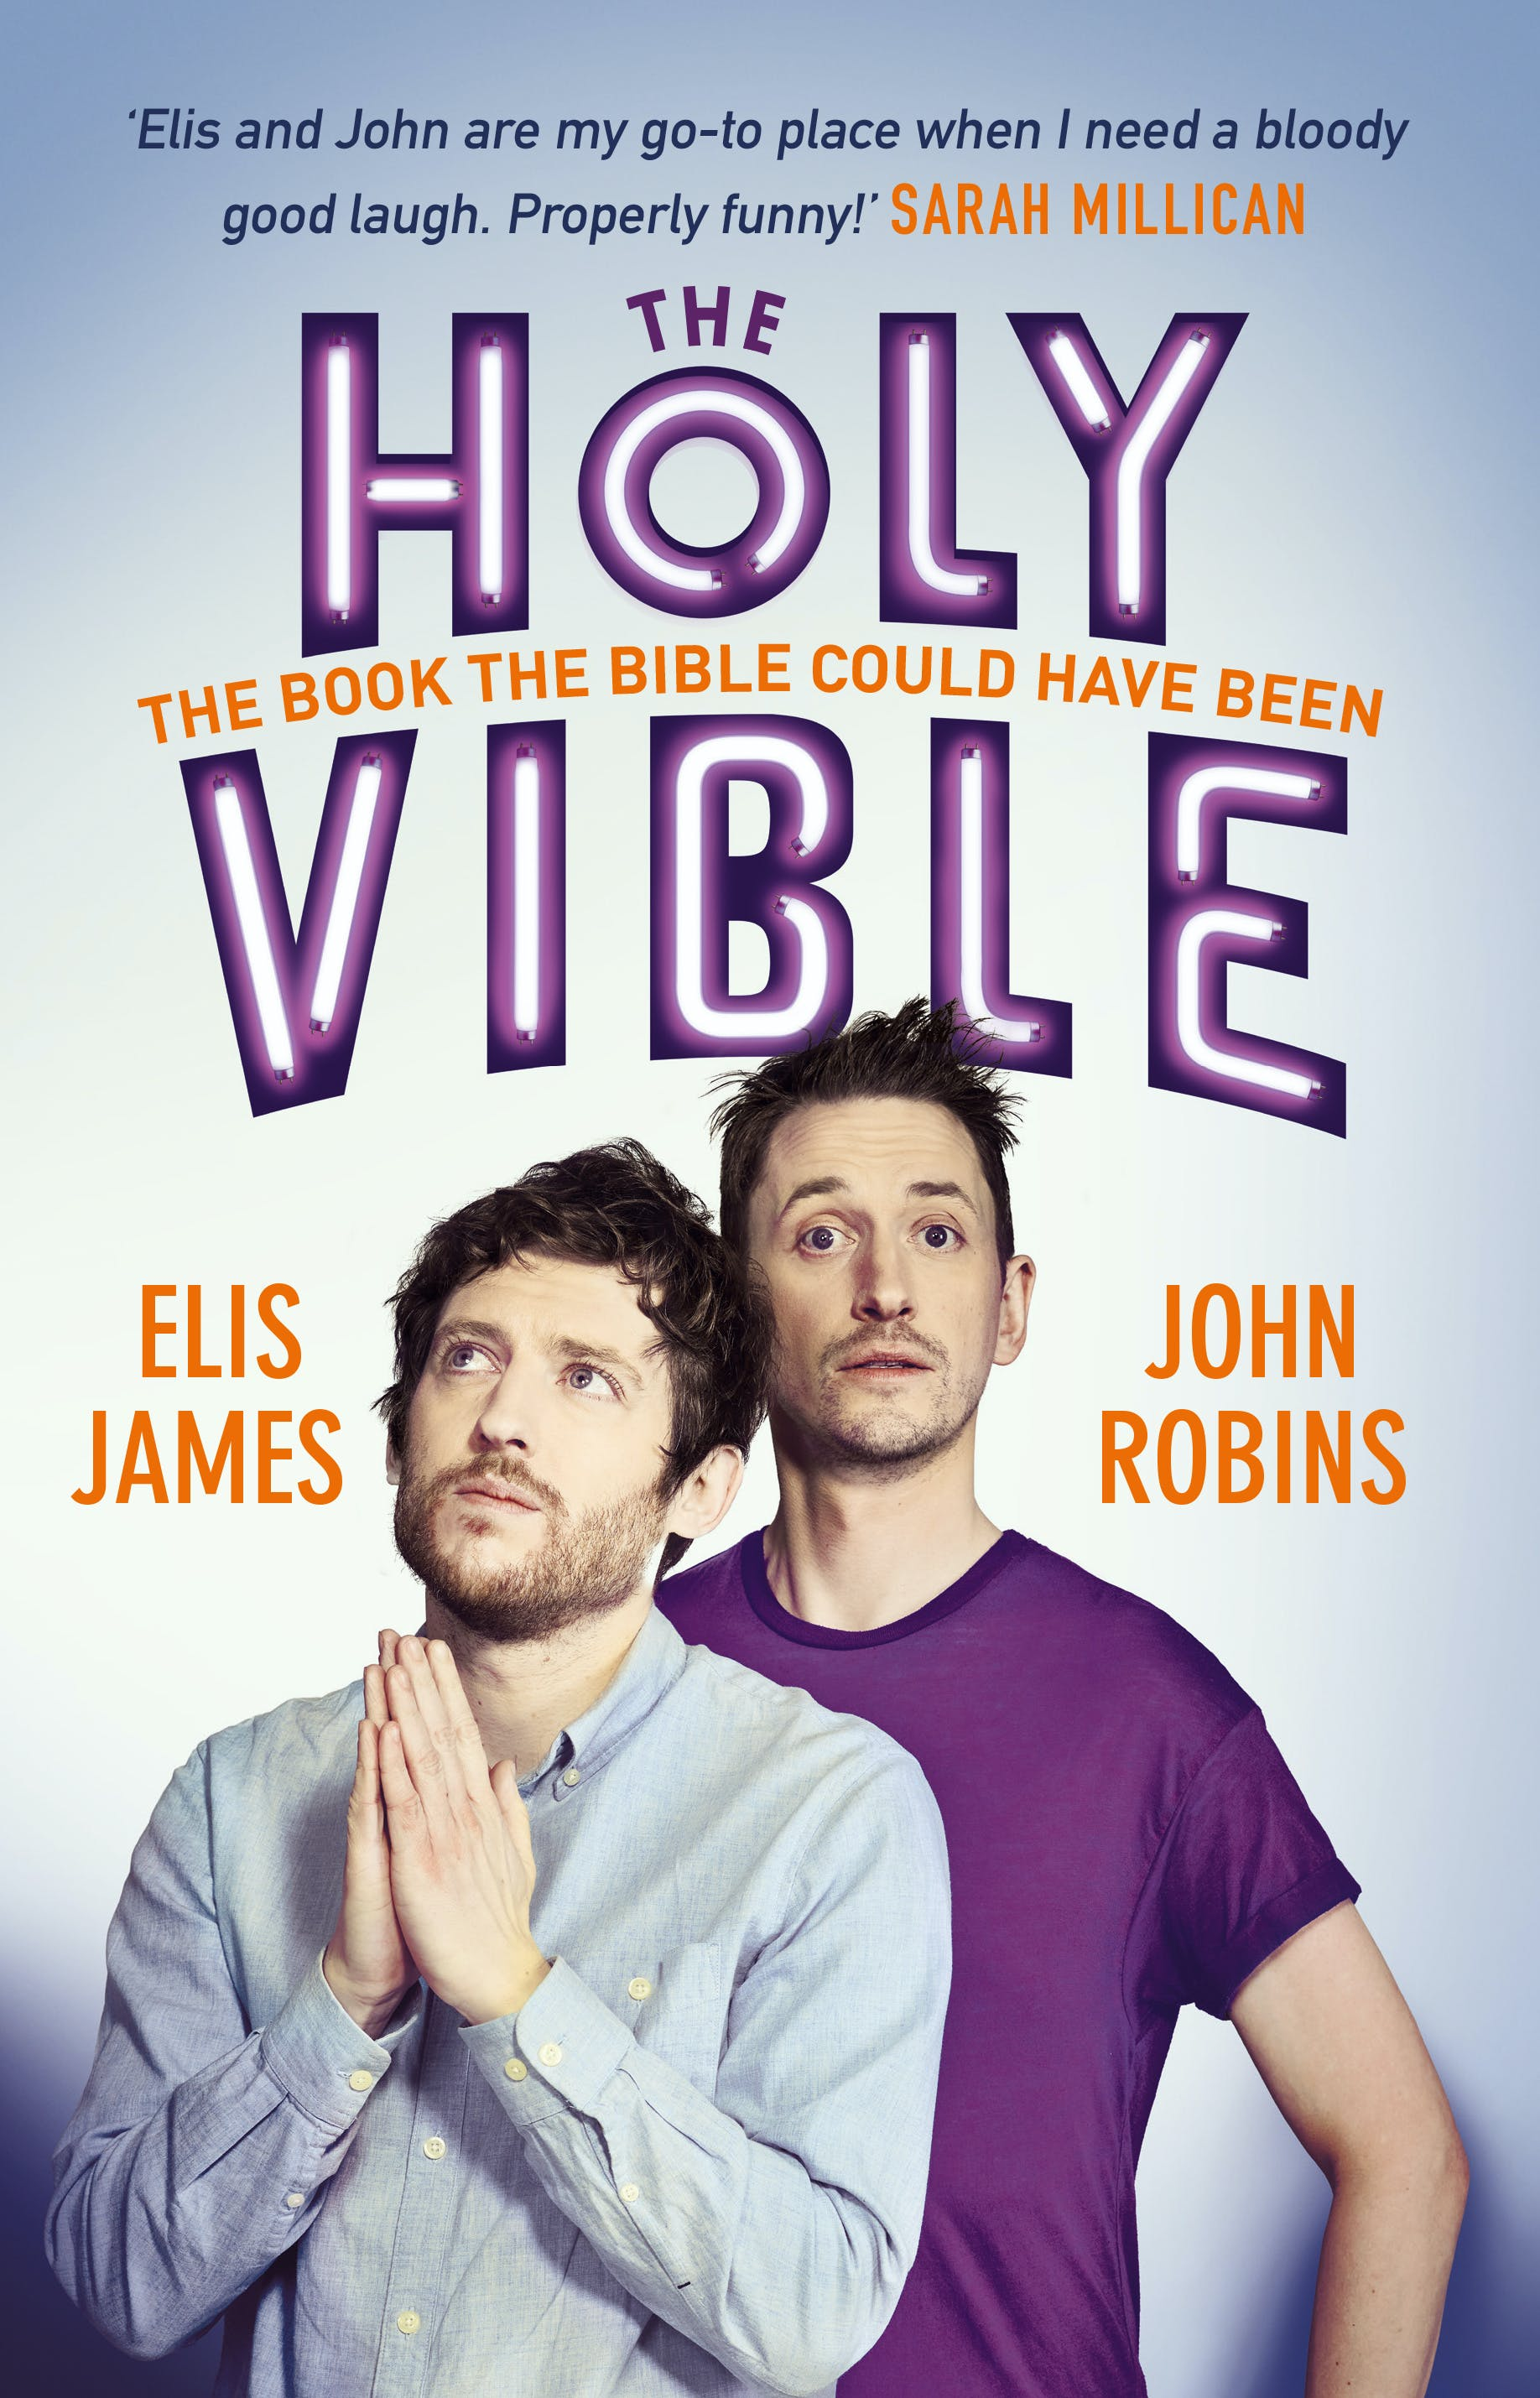 Elis and John Present the Holy Vible: The Book The Bible